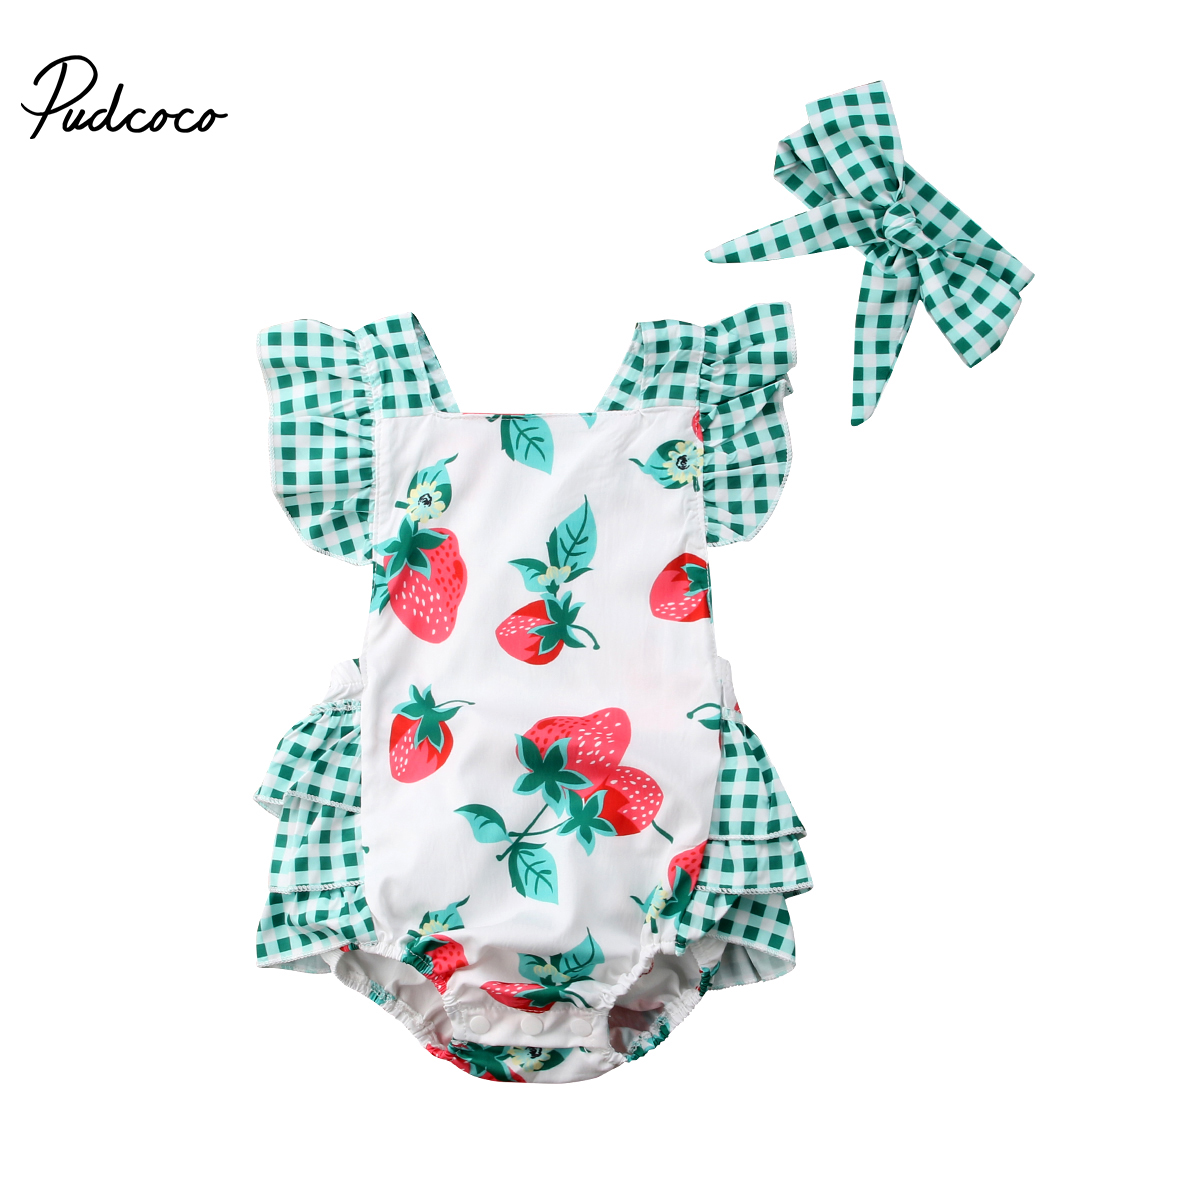 0-24M Baby Girl Clothes Summer Rompers Newborn Baby Girl Print Romper Jumpsuit Infant Headband Clothes Outfits Set 2017 floral baby romper newborn baby girl clothes ruffles sleeve bodysuit headband 2pcs outfit bebek giyim sunsuit 0 24m